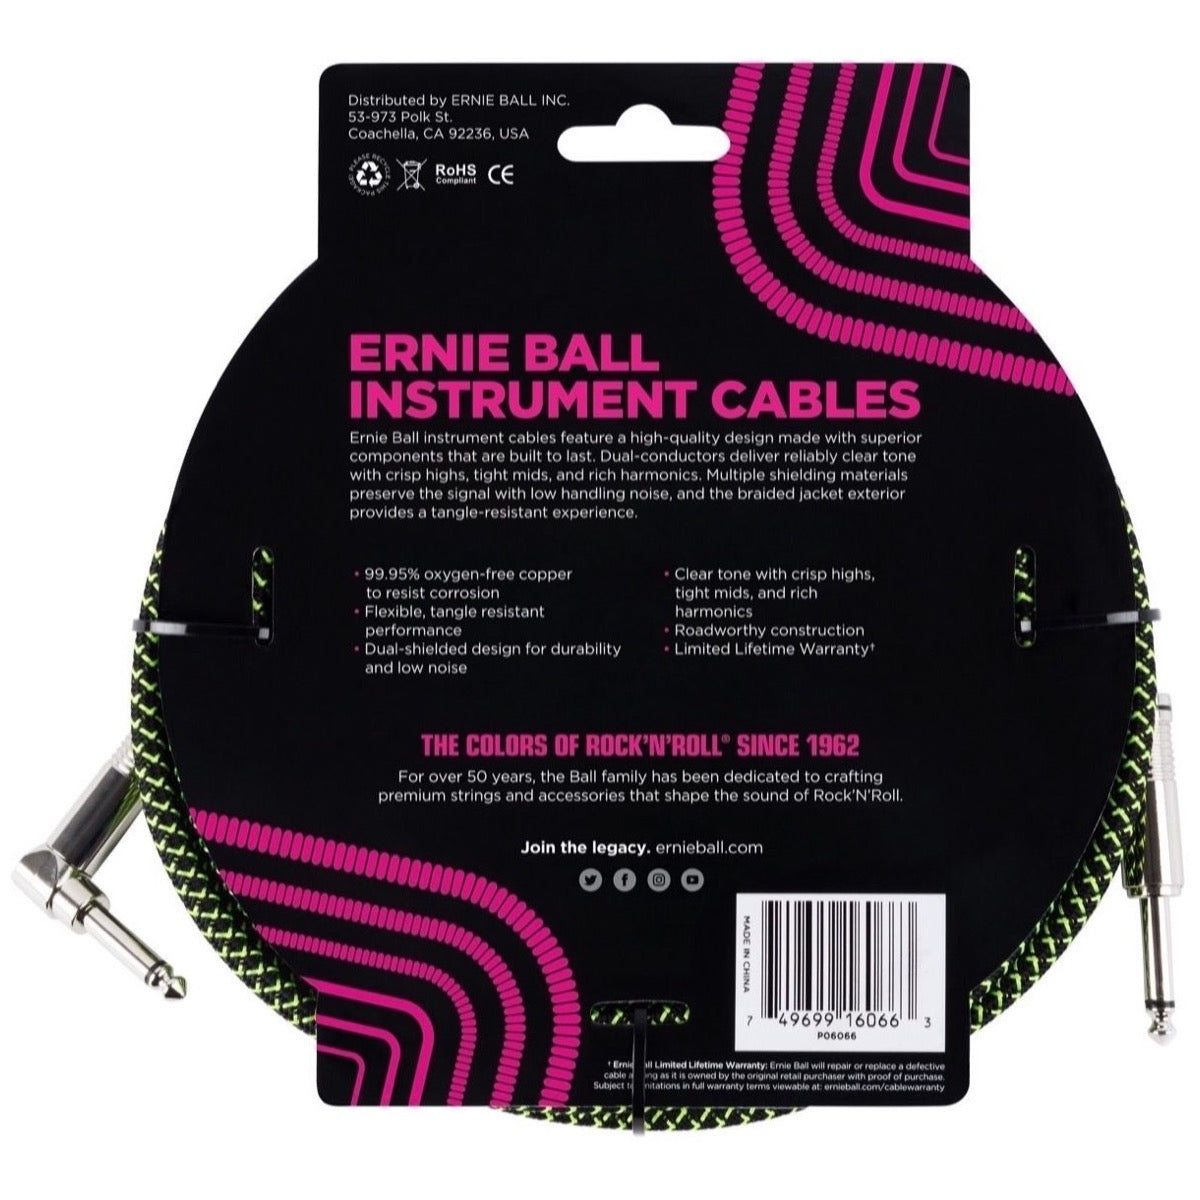 Ernie Ball Braided Guitar Cable, Black and Green, 25 Foot